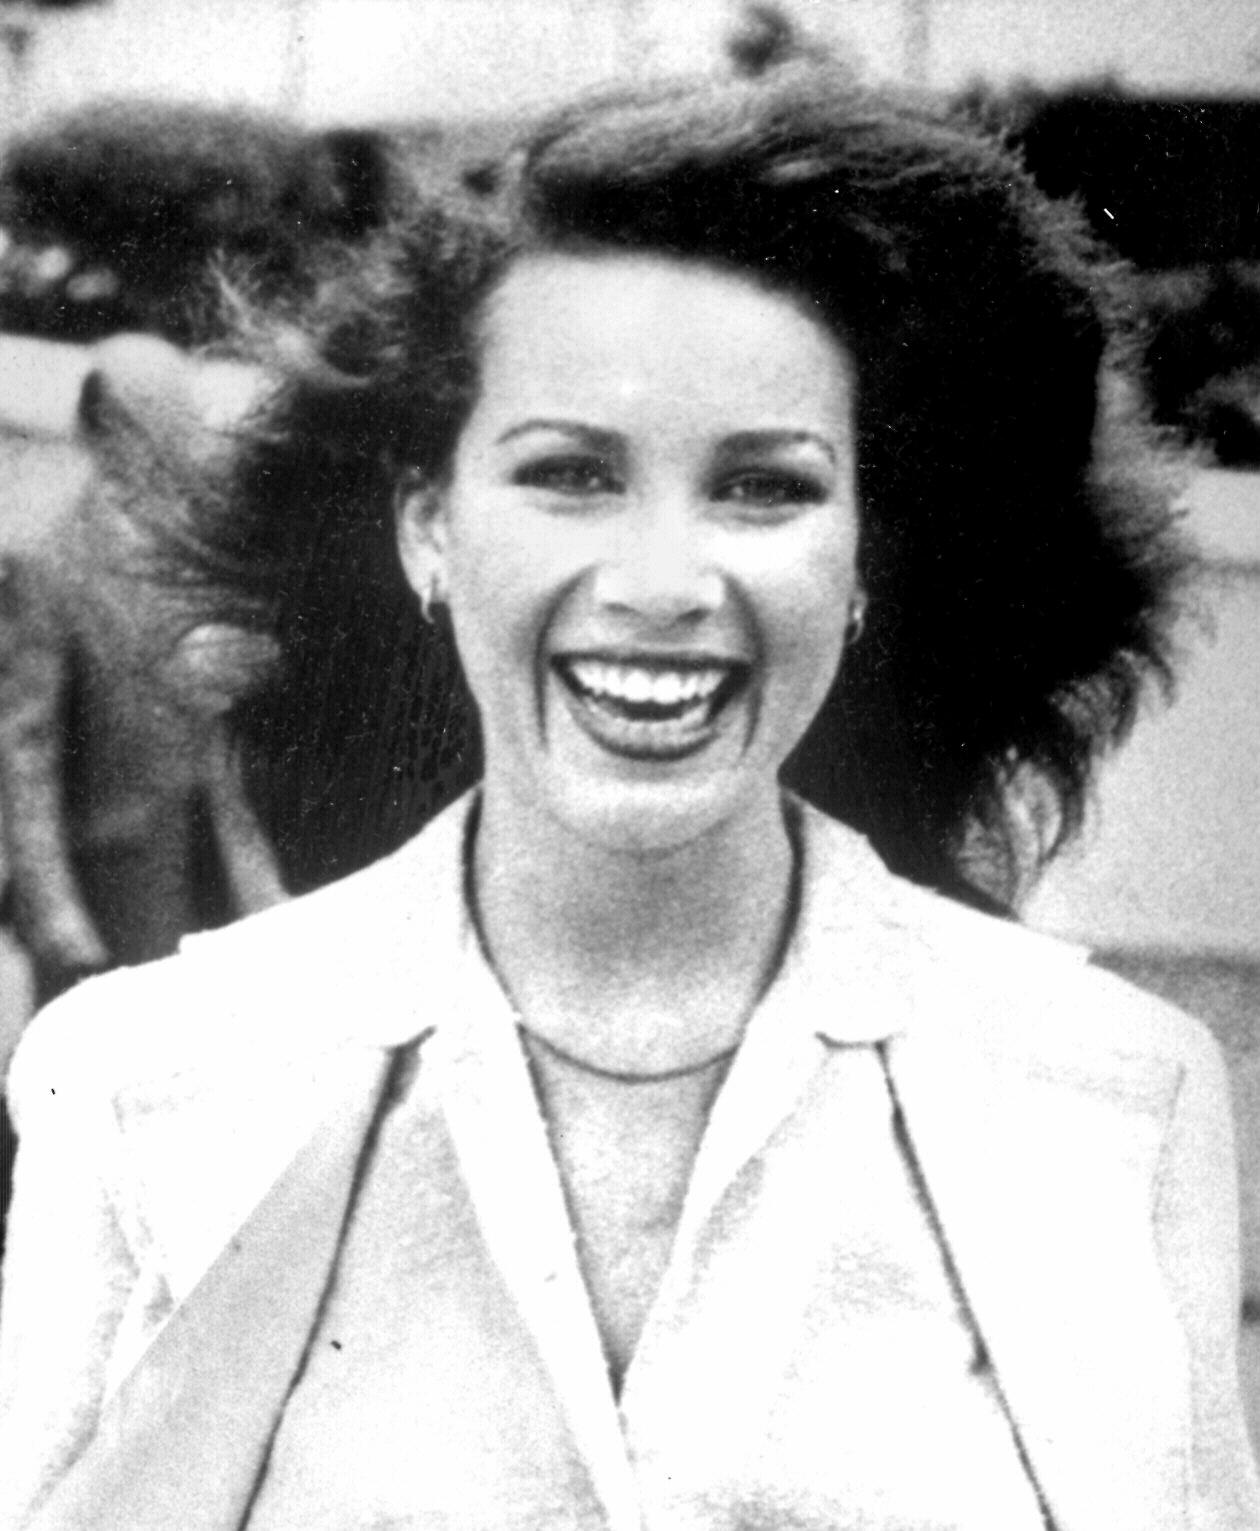 Copy photo of murder victim Anita Cobby, former beauty queen & nurse abducted, raped & murdered 02/02/86.  New South Wales (NSW) / Crime / Murder P/ Picture: Supplied